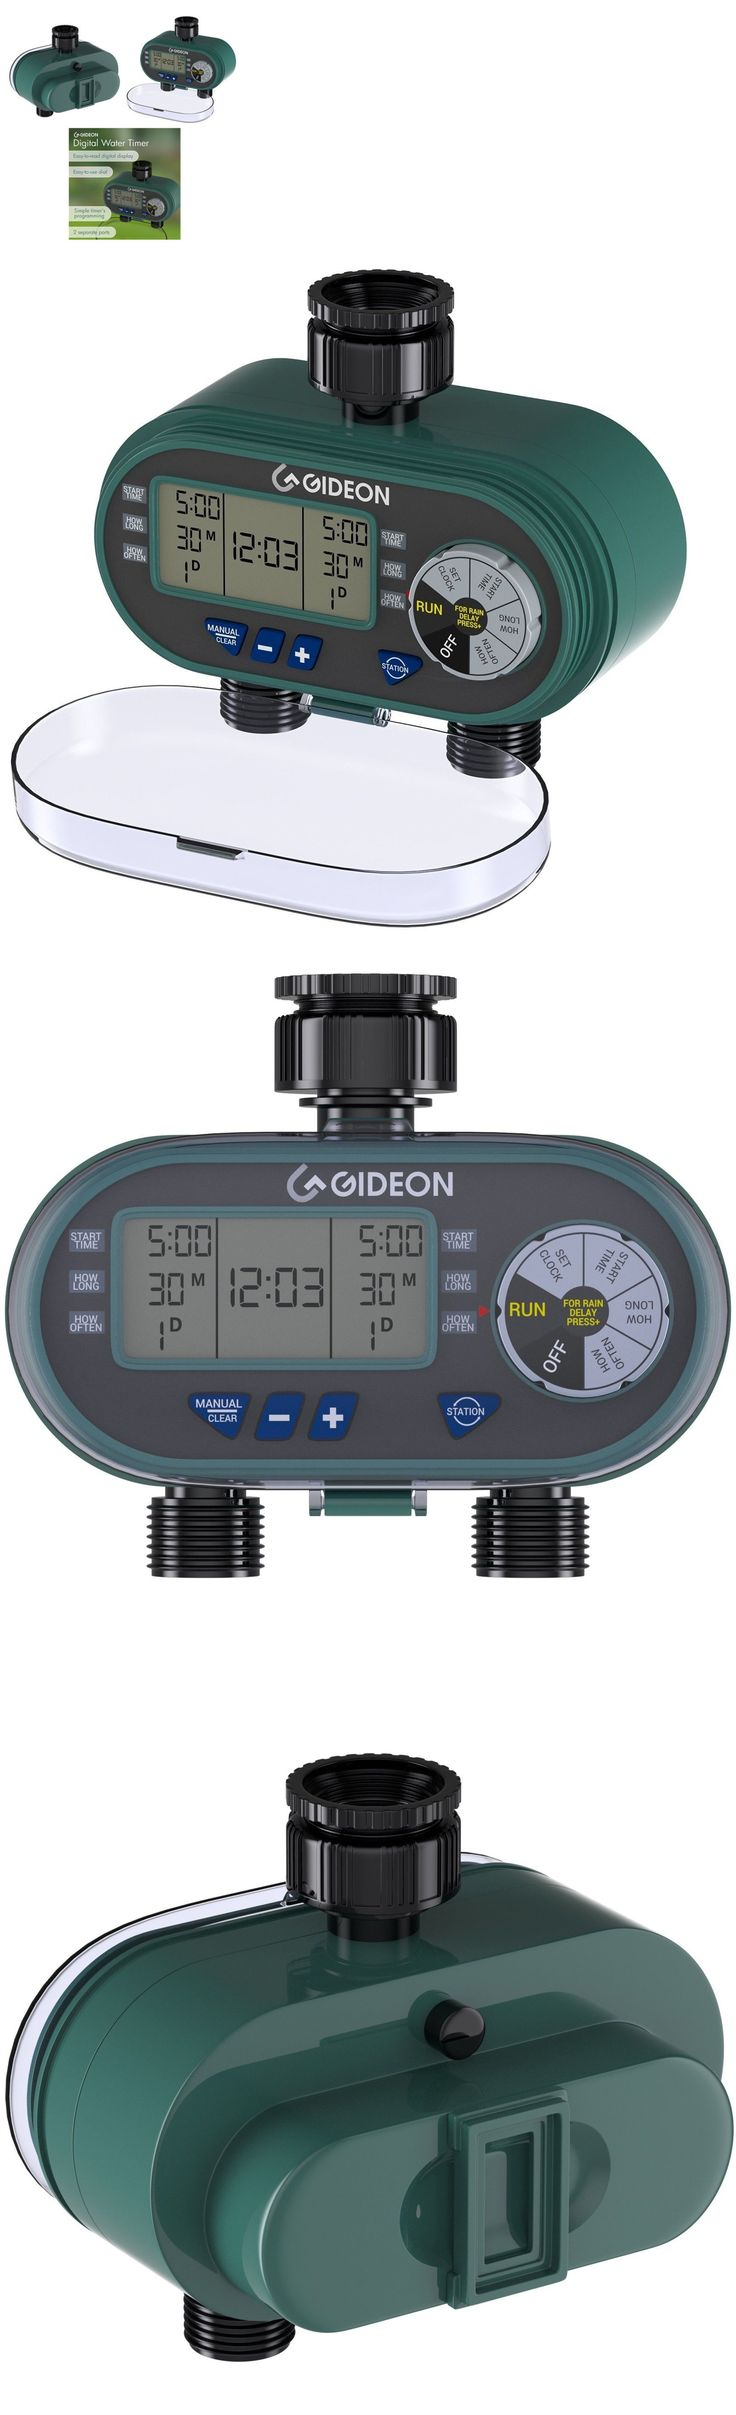 Watering Timers and Controllers 75672: Water Timer Sprinkler Automatic System Electronic Irrigation Garden Watering Kit -> BUY IT NOW ONLY: $56.59 on eBay!